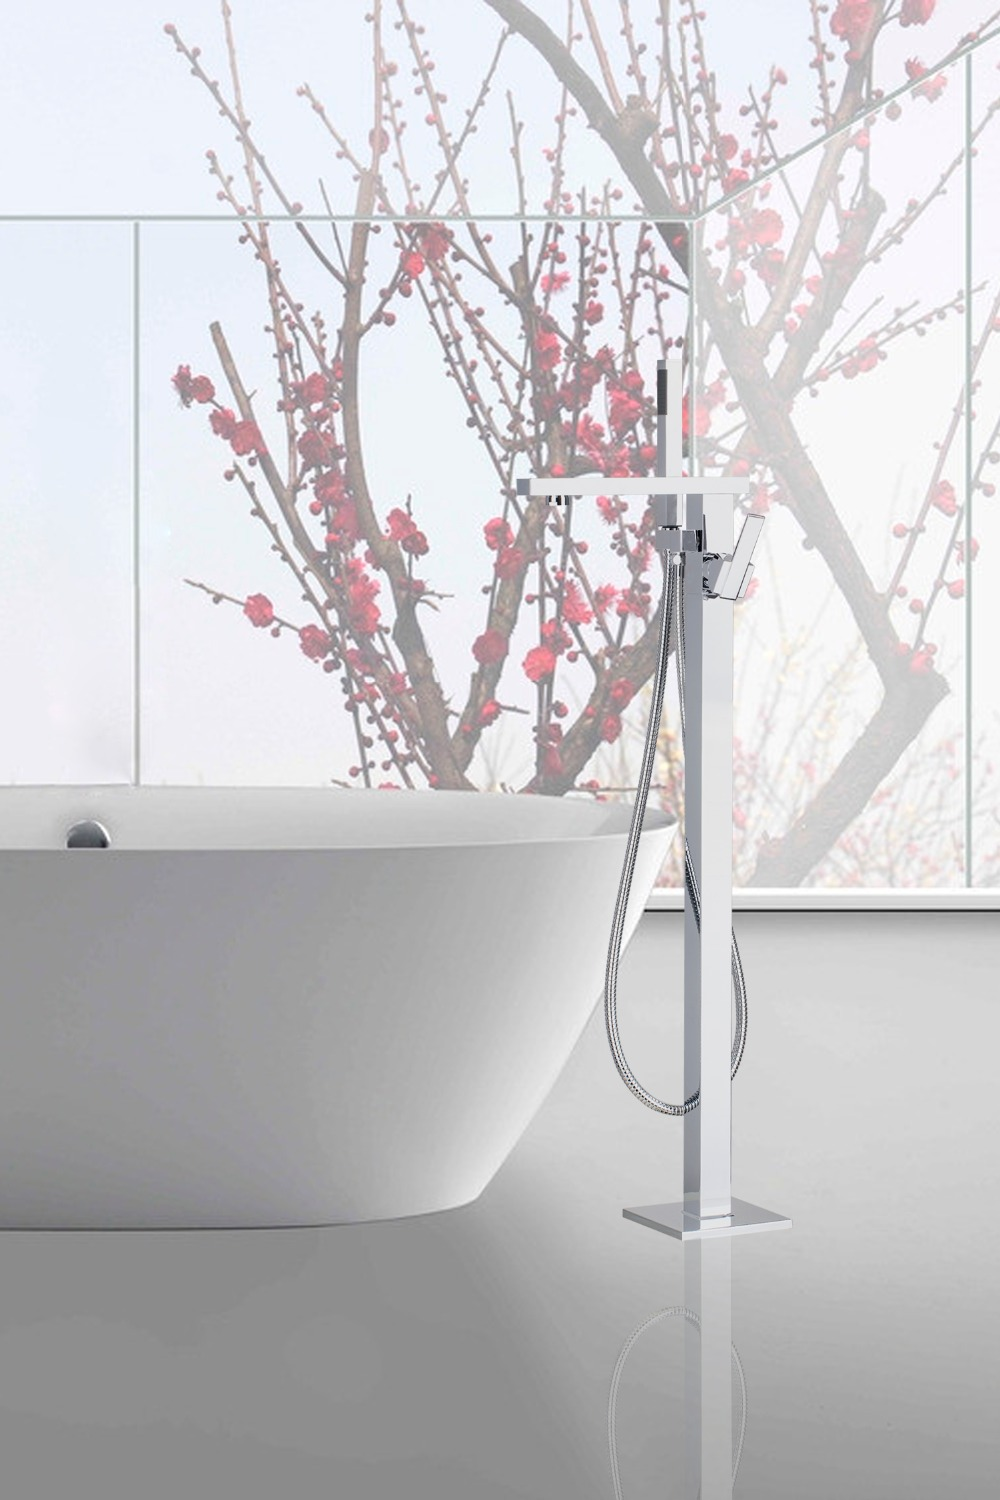 OUBONI Luxury Chrome Polish Waterfall Shower Faucet Set Free Standing Tub Mixer Tap with Handheld Shower Floor Mounted